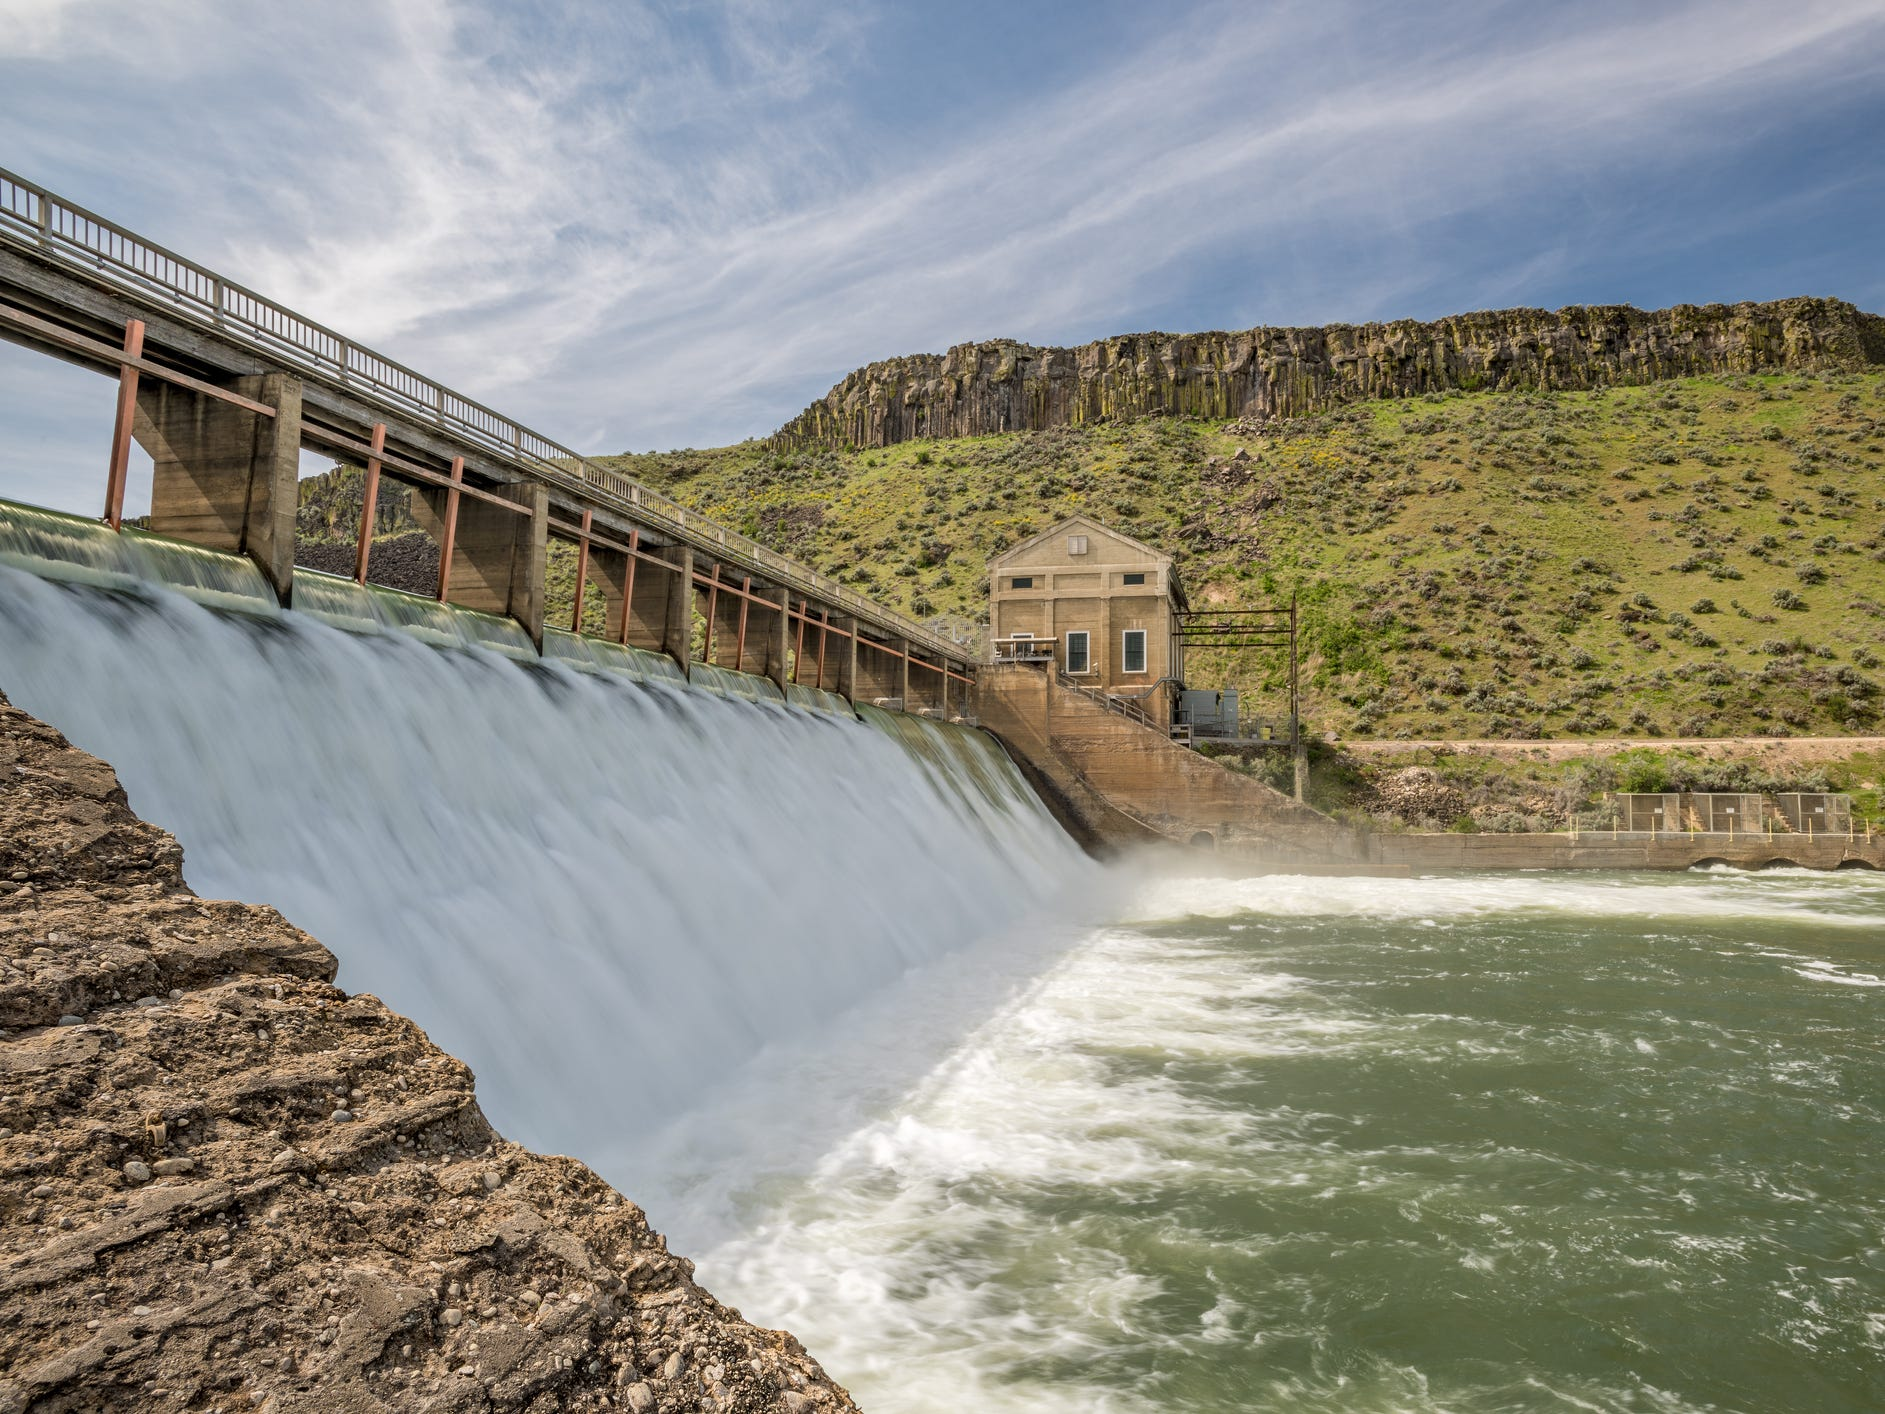 Boise River Diversion Dam in Idaho.